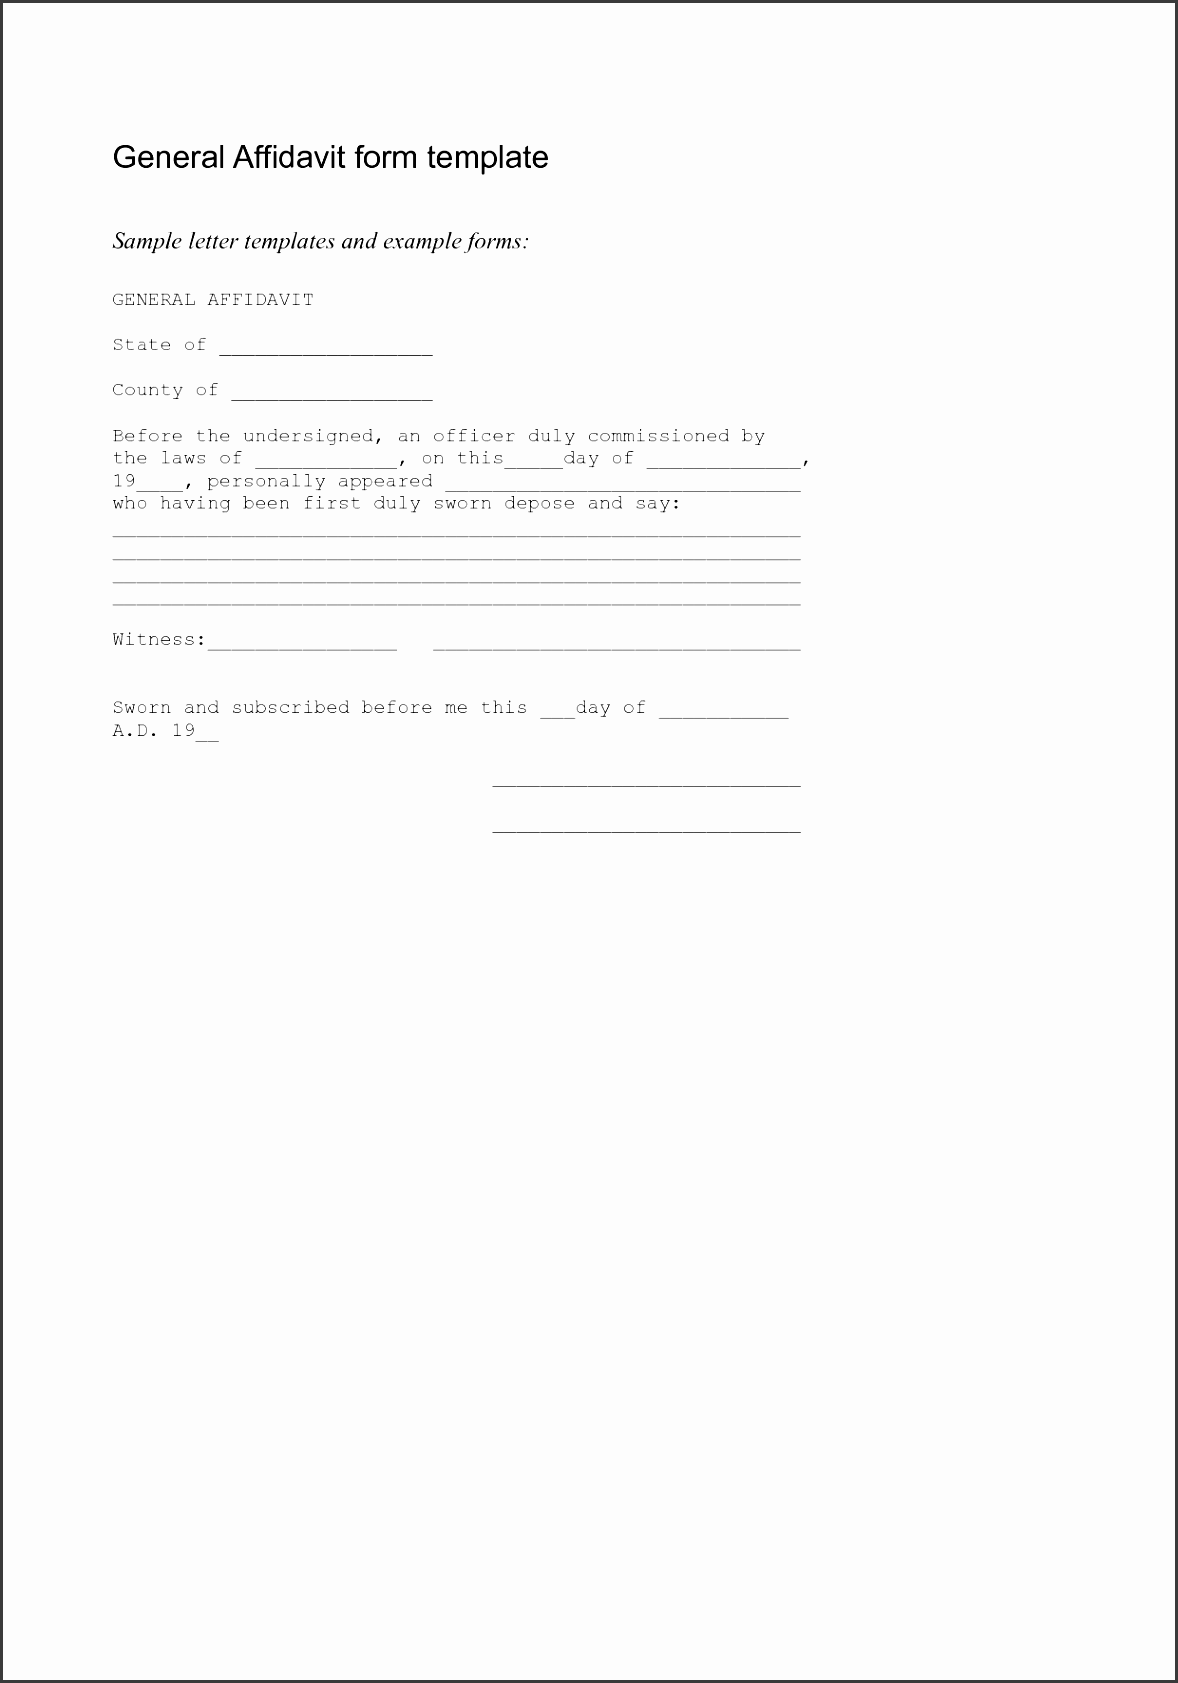 Affidavit Of Facts Template Free Event Ticket Templates For Word General  Affidavit Template Affidavit Of Facts  Affidavit Statement Of Facts